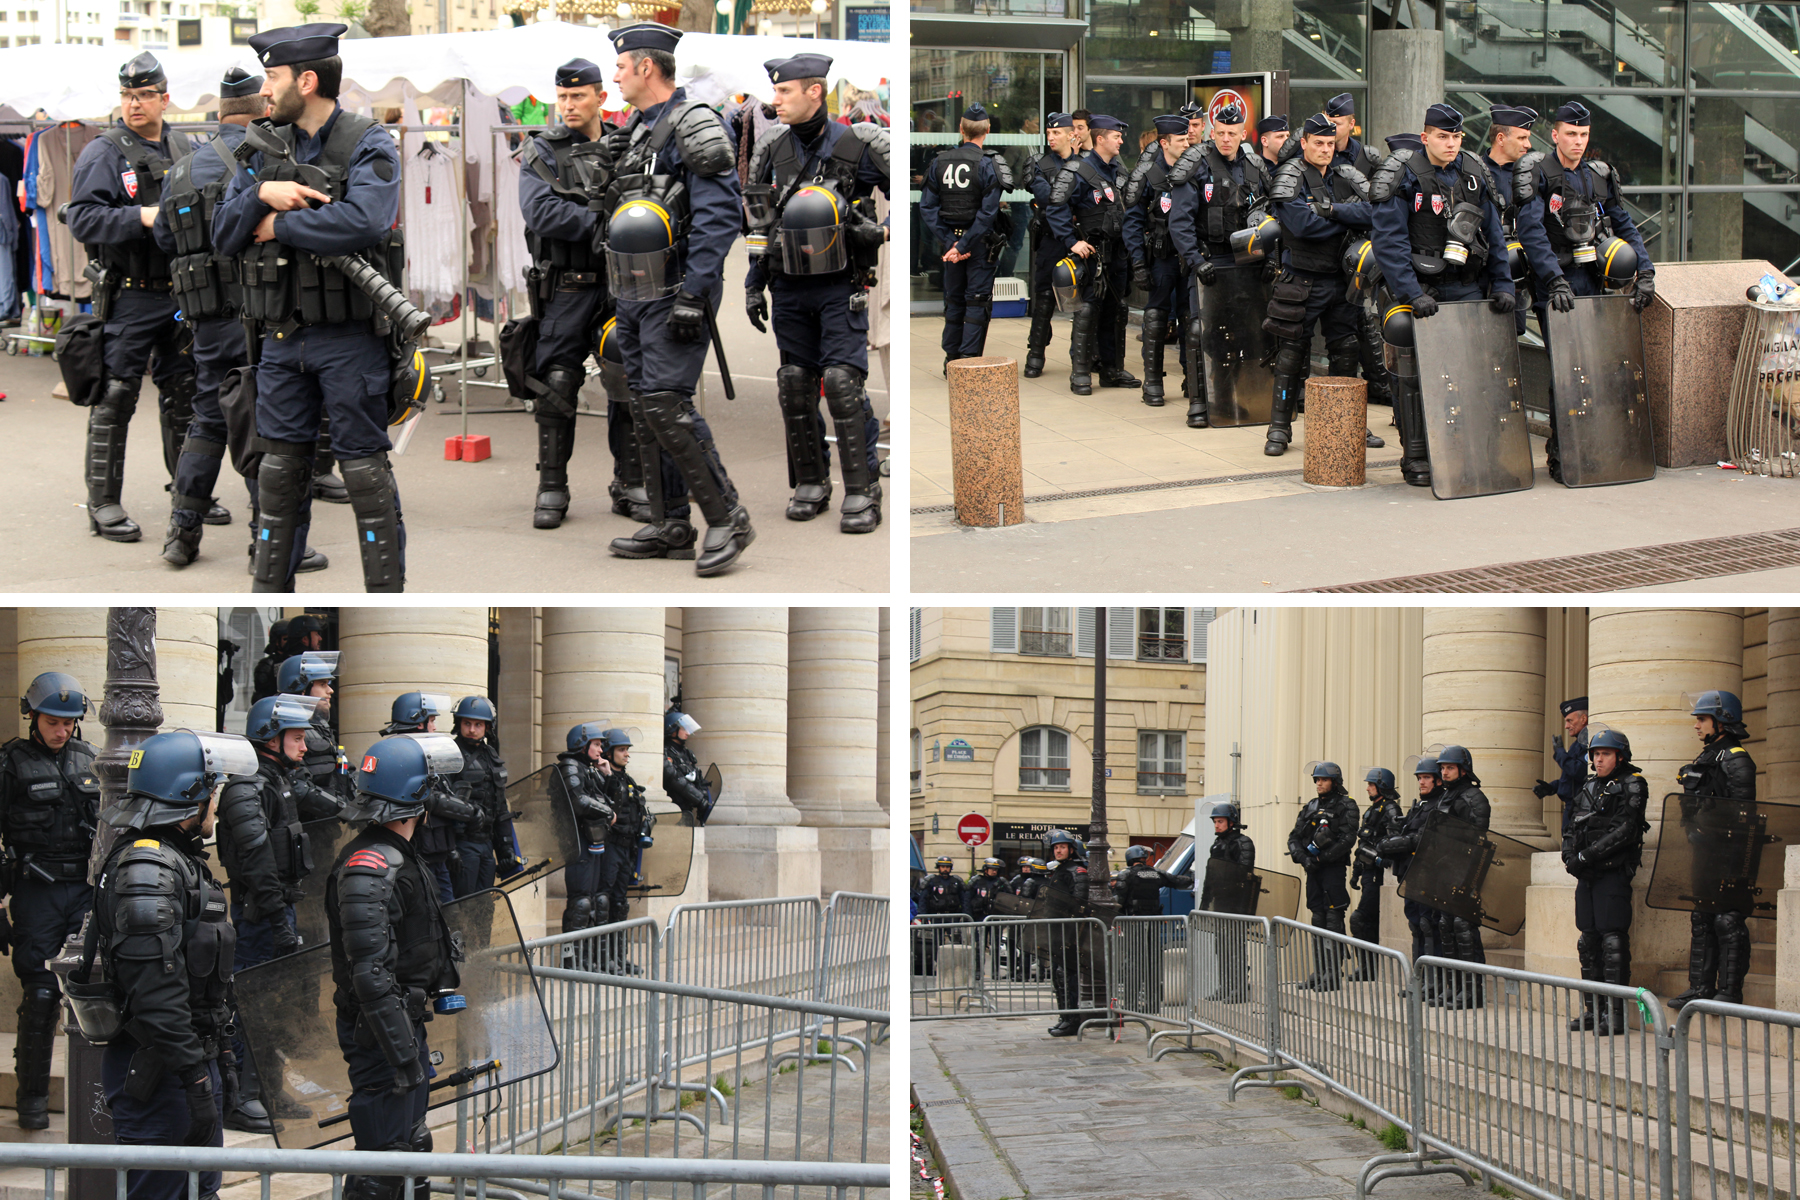 Police Paris 2016 - Photos by Leopold Lambert